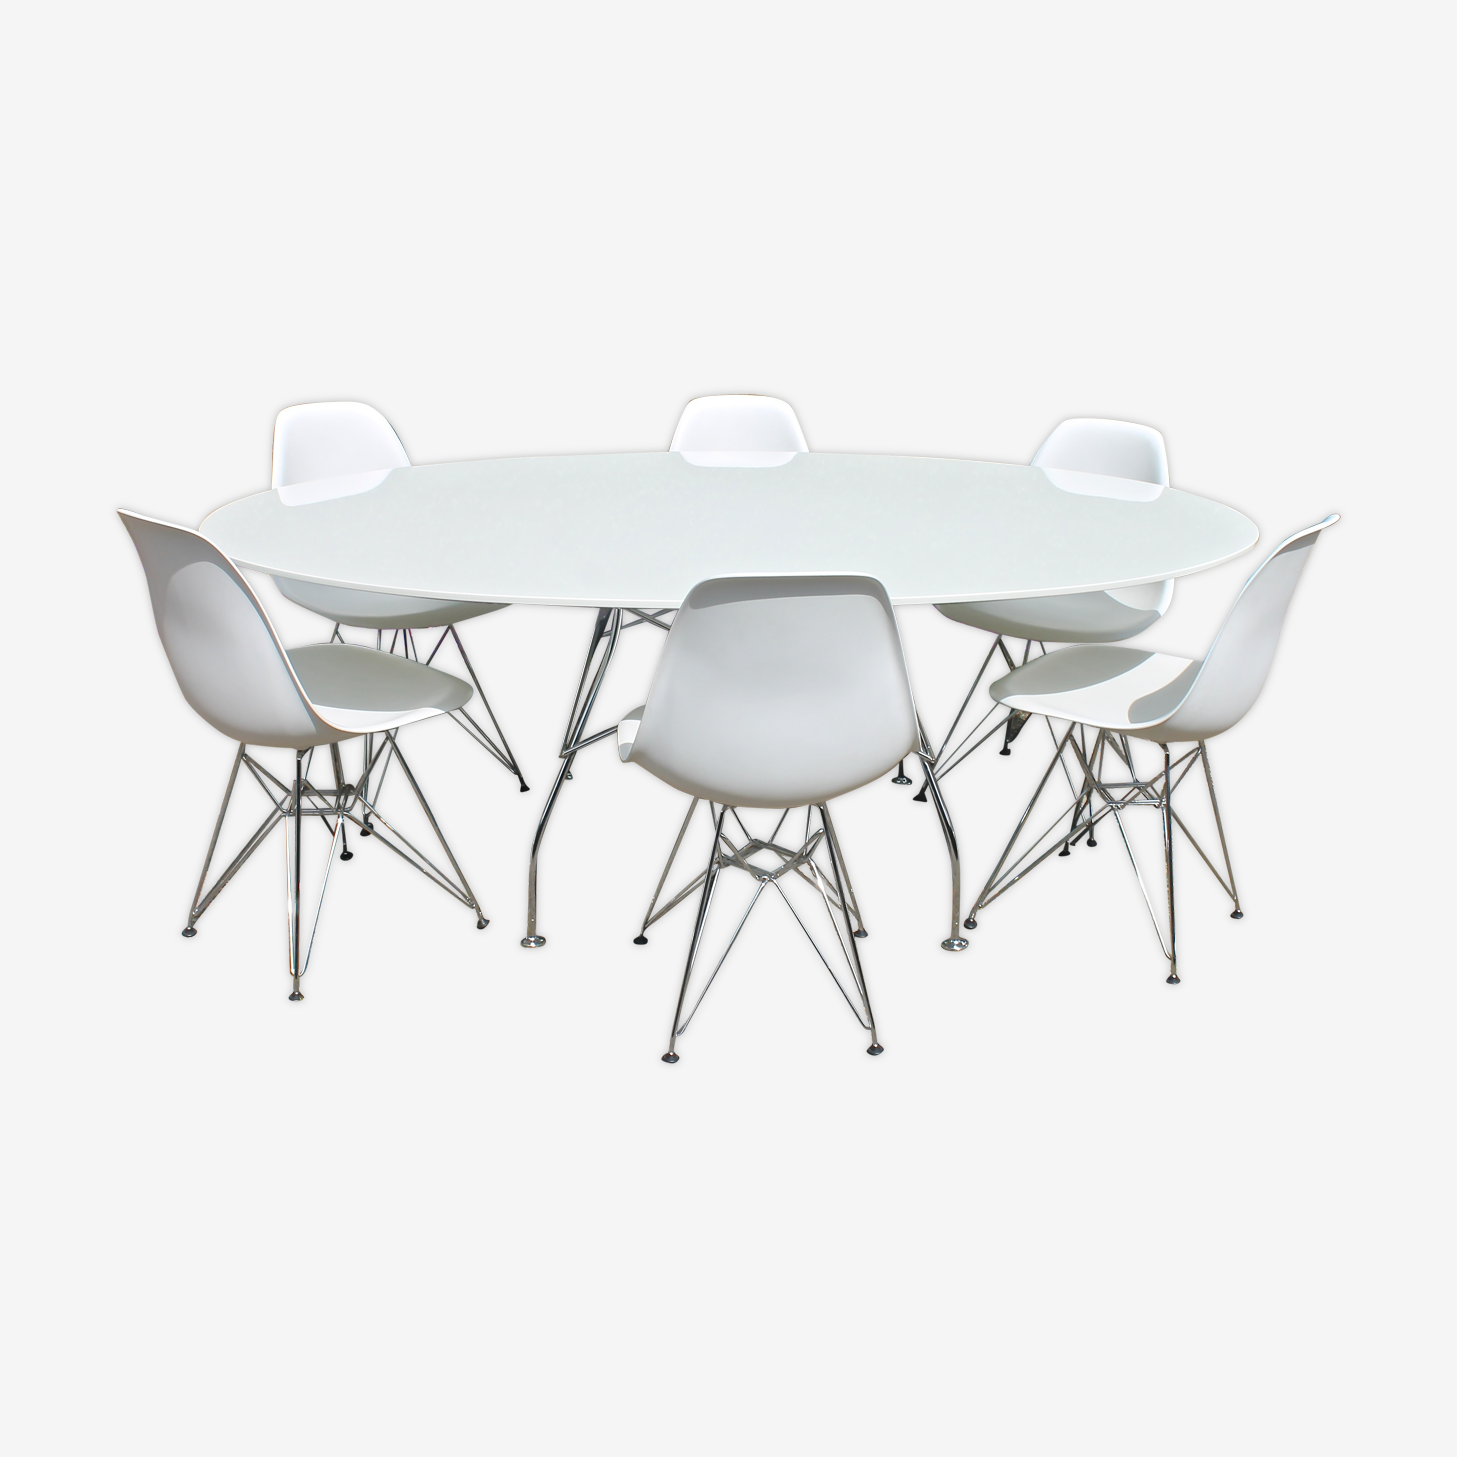 Set of 6 chairs DSR Eames Vitra edition and Kartell table by Antonio Citterio